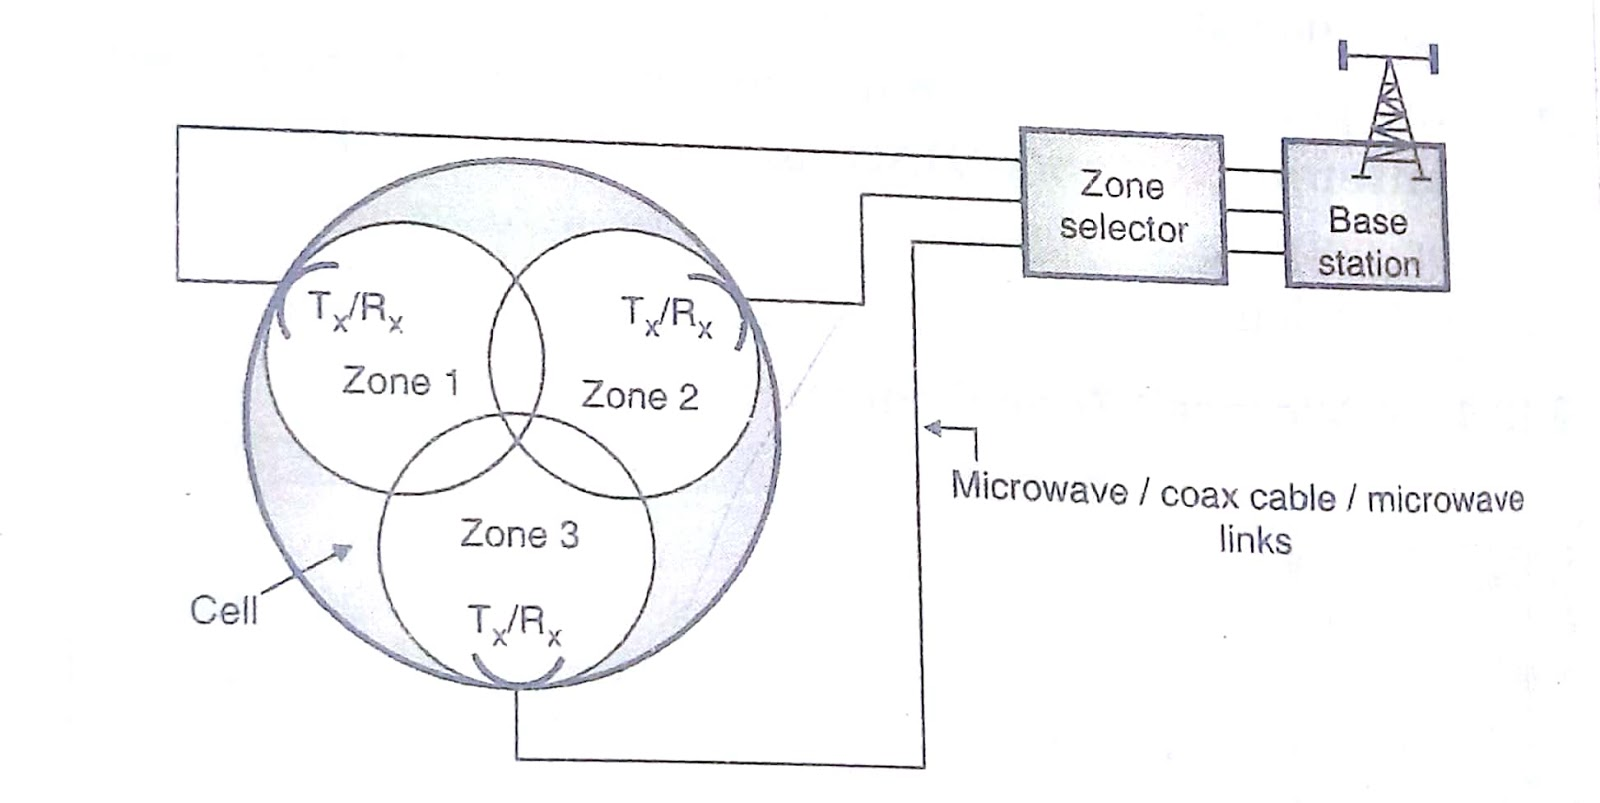 Microcell Zone Concept